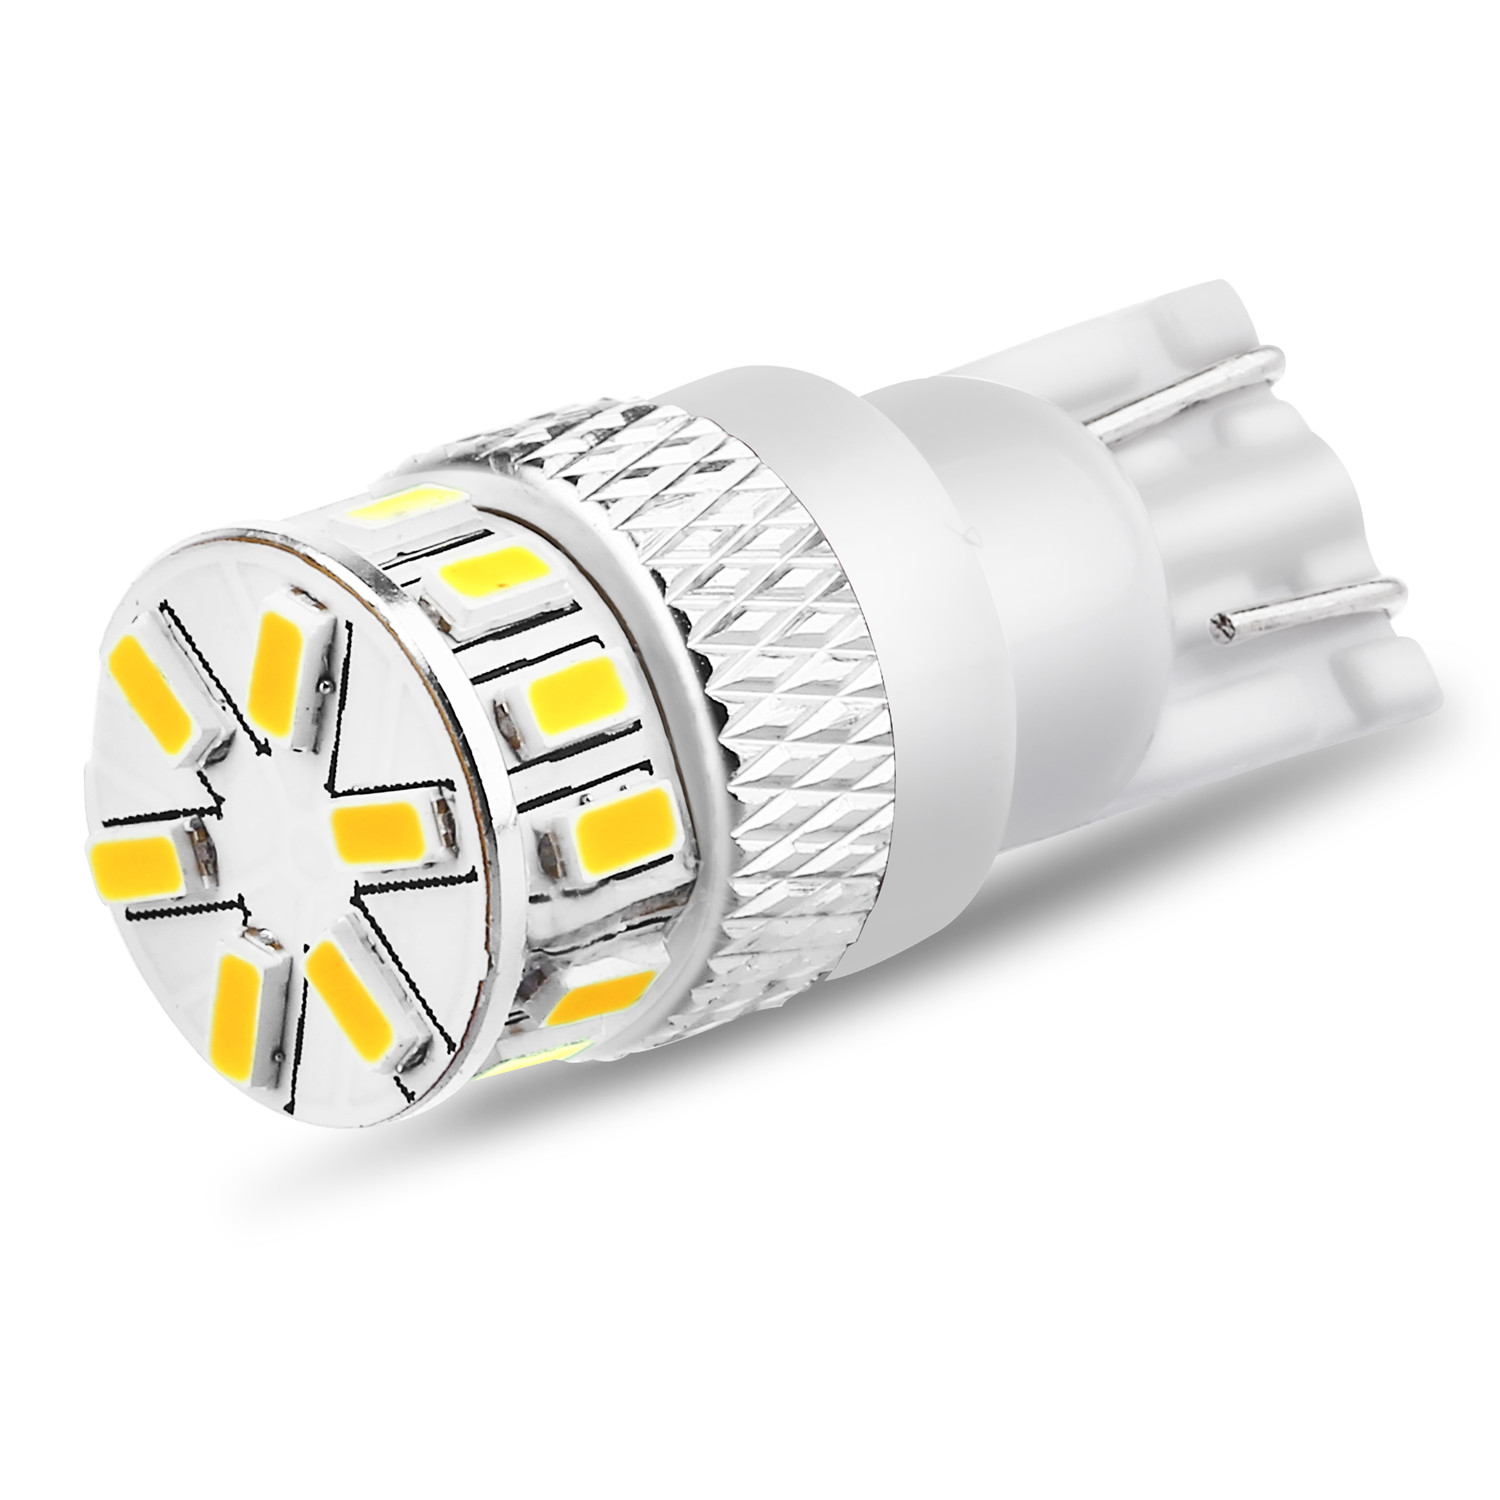 2005 Jeep Wrangler LED Auto Trans Indicator Light Bulb 12V Replacement